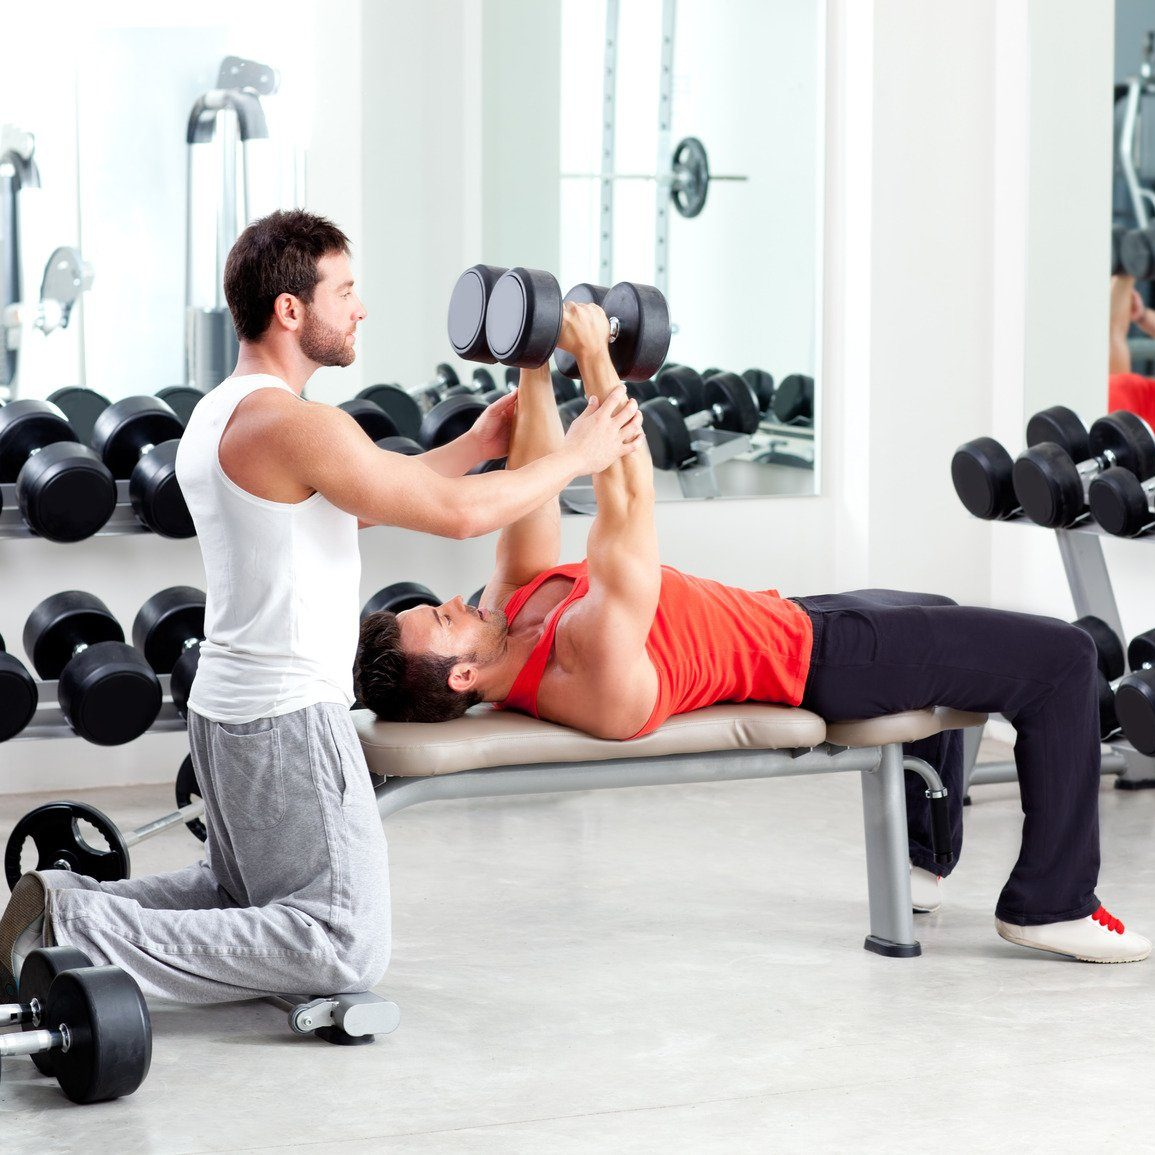 gym personal trainer man with weight training equipment